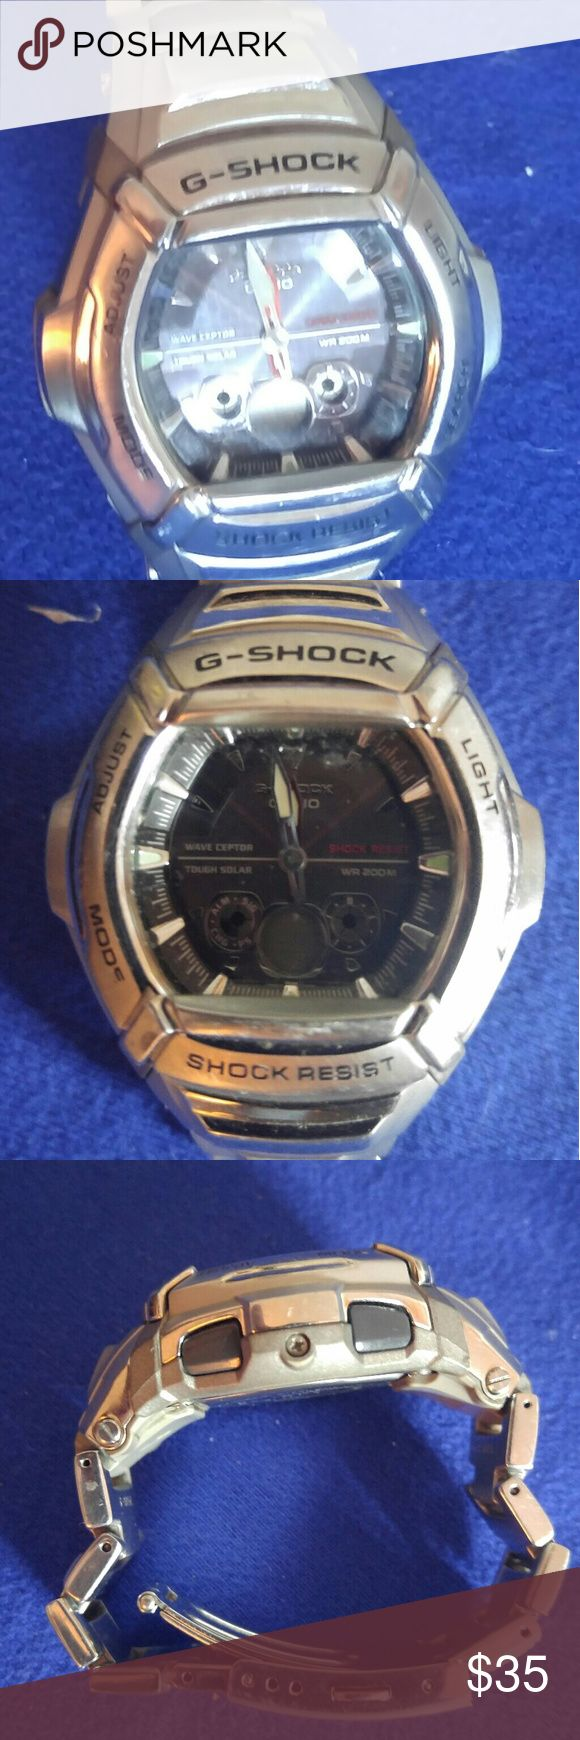 Mens G Shock wathch Very nice G-Shock watch for men everything works on it keeps perfect time really nice watch for that spending the new ones prices G-Shock Accessories Watches